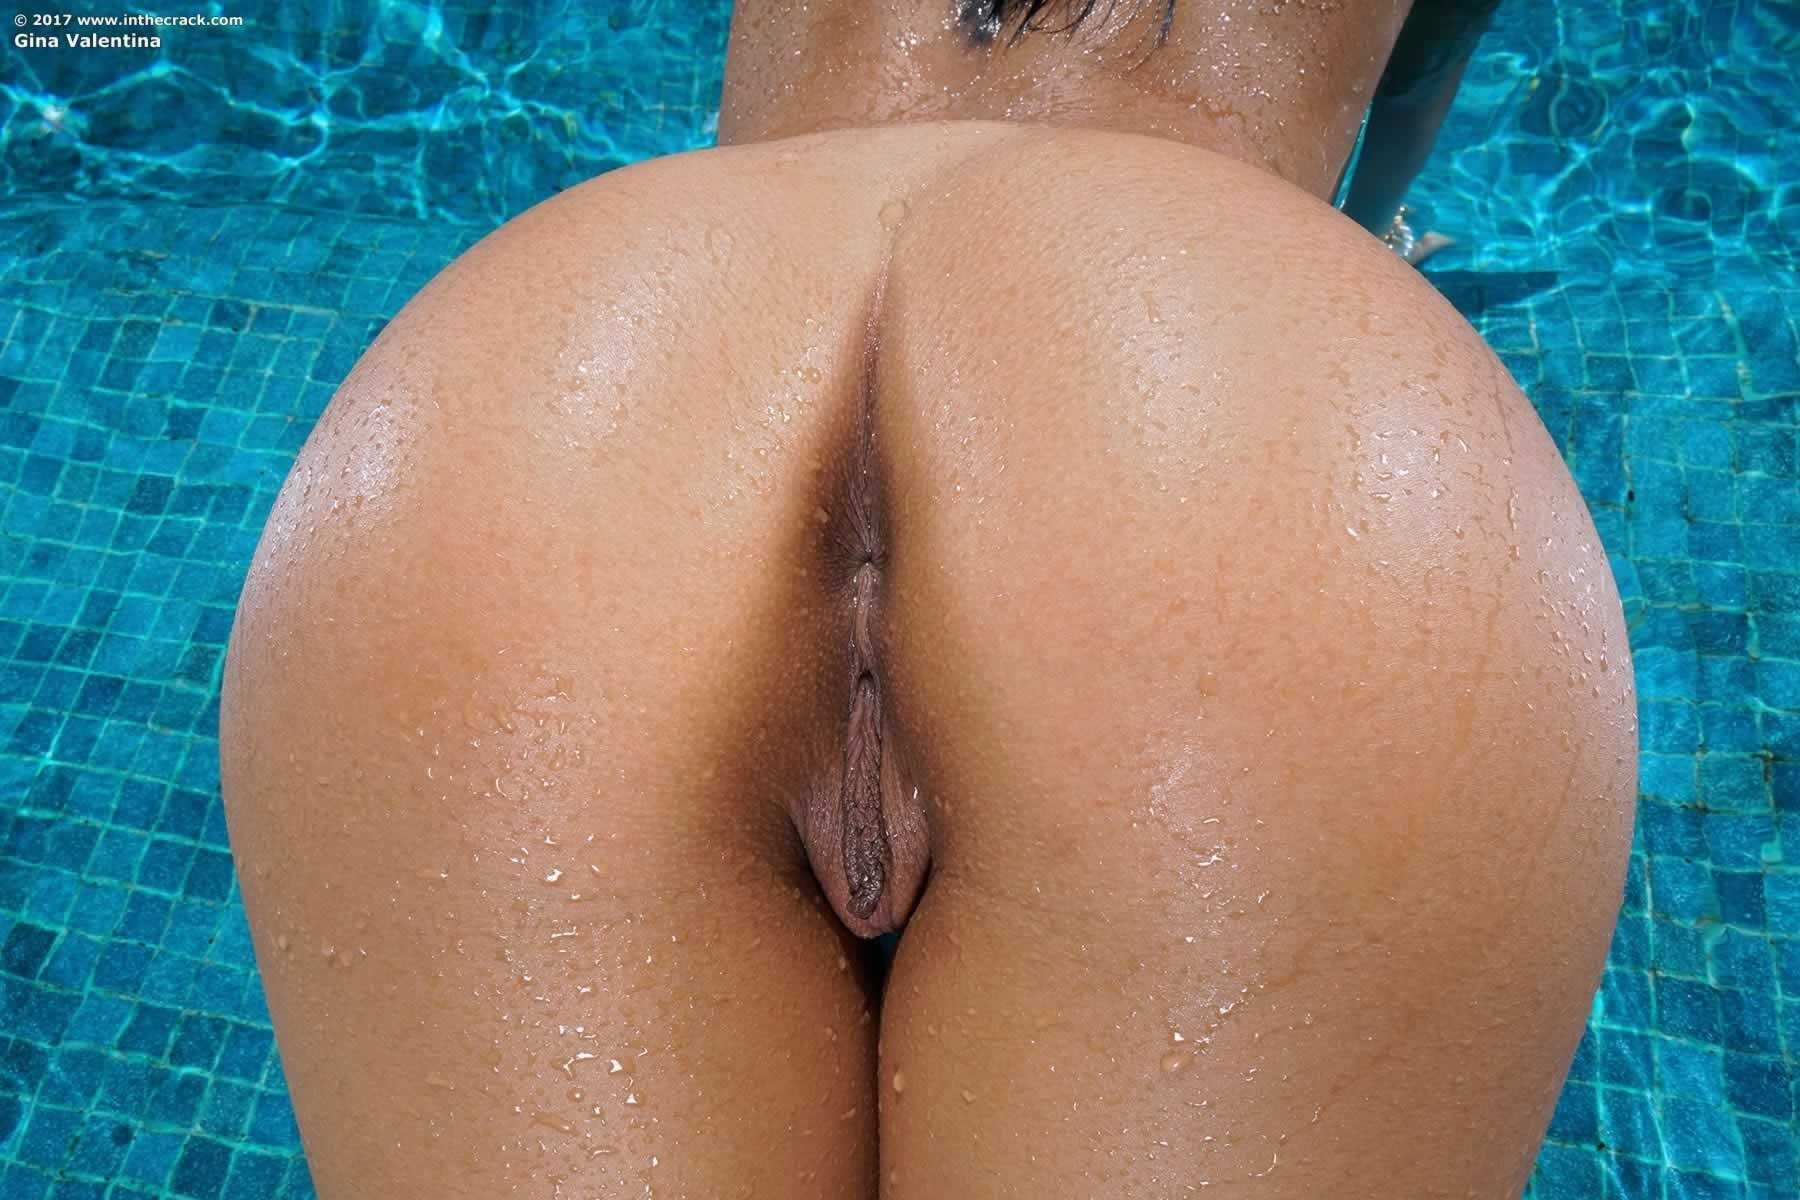 Gina Valentina Pool Babe - Fine Hotties - Hot Naked Girls ...